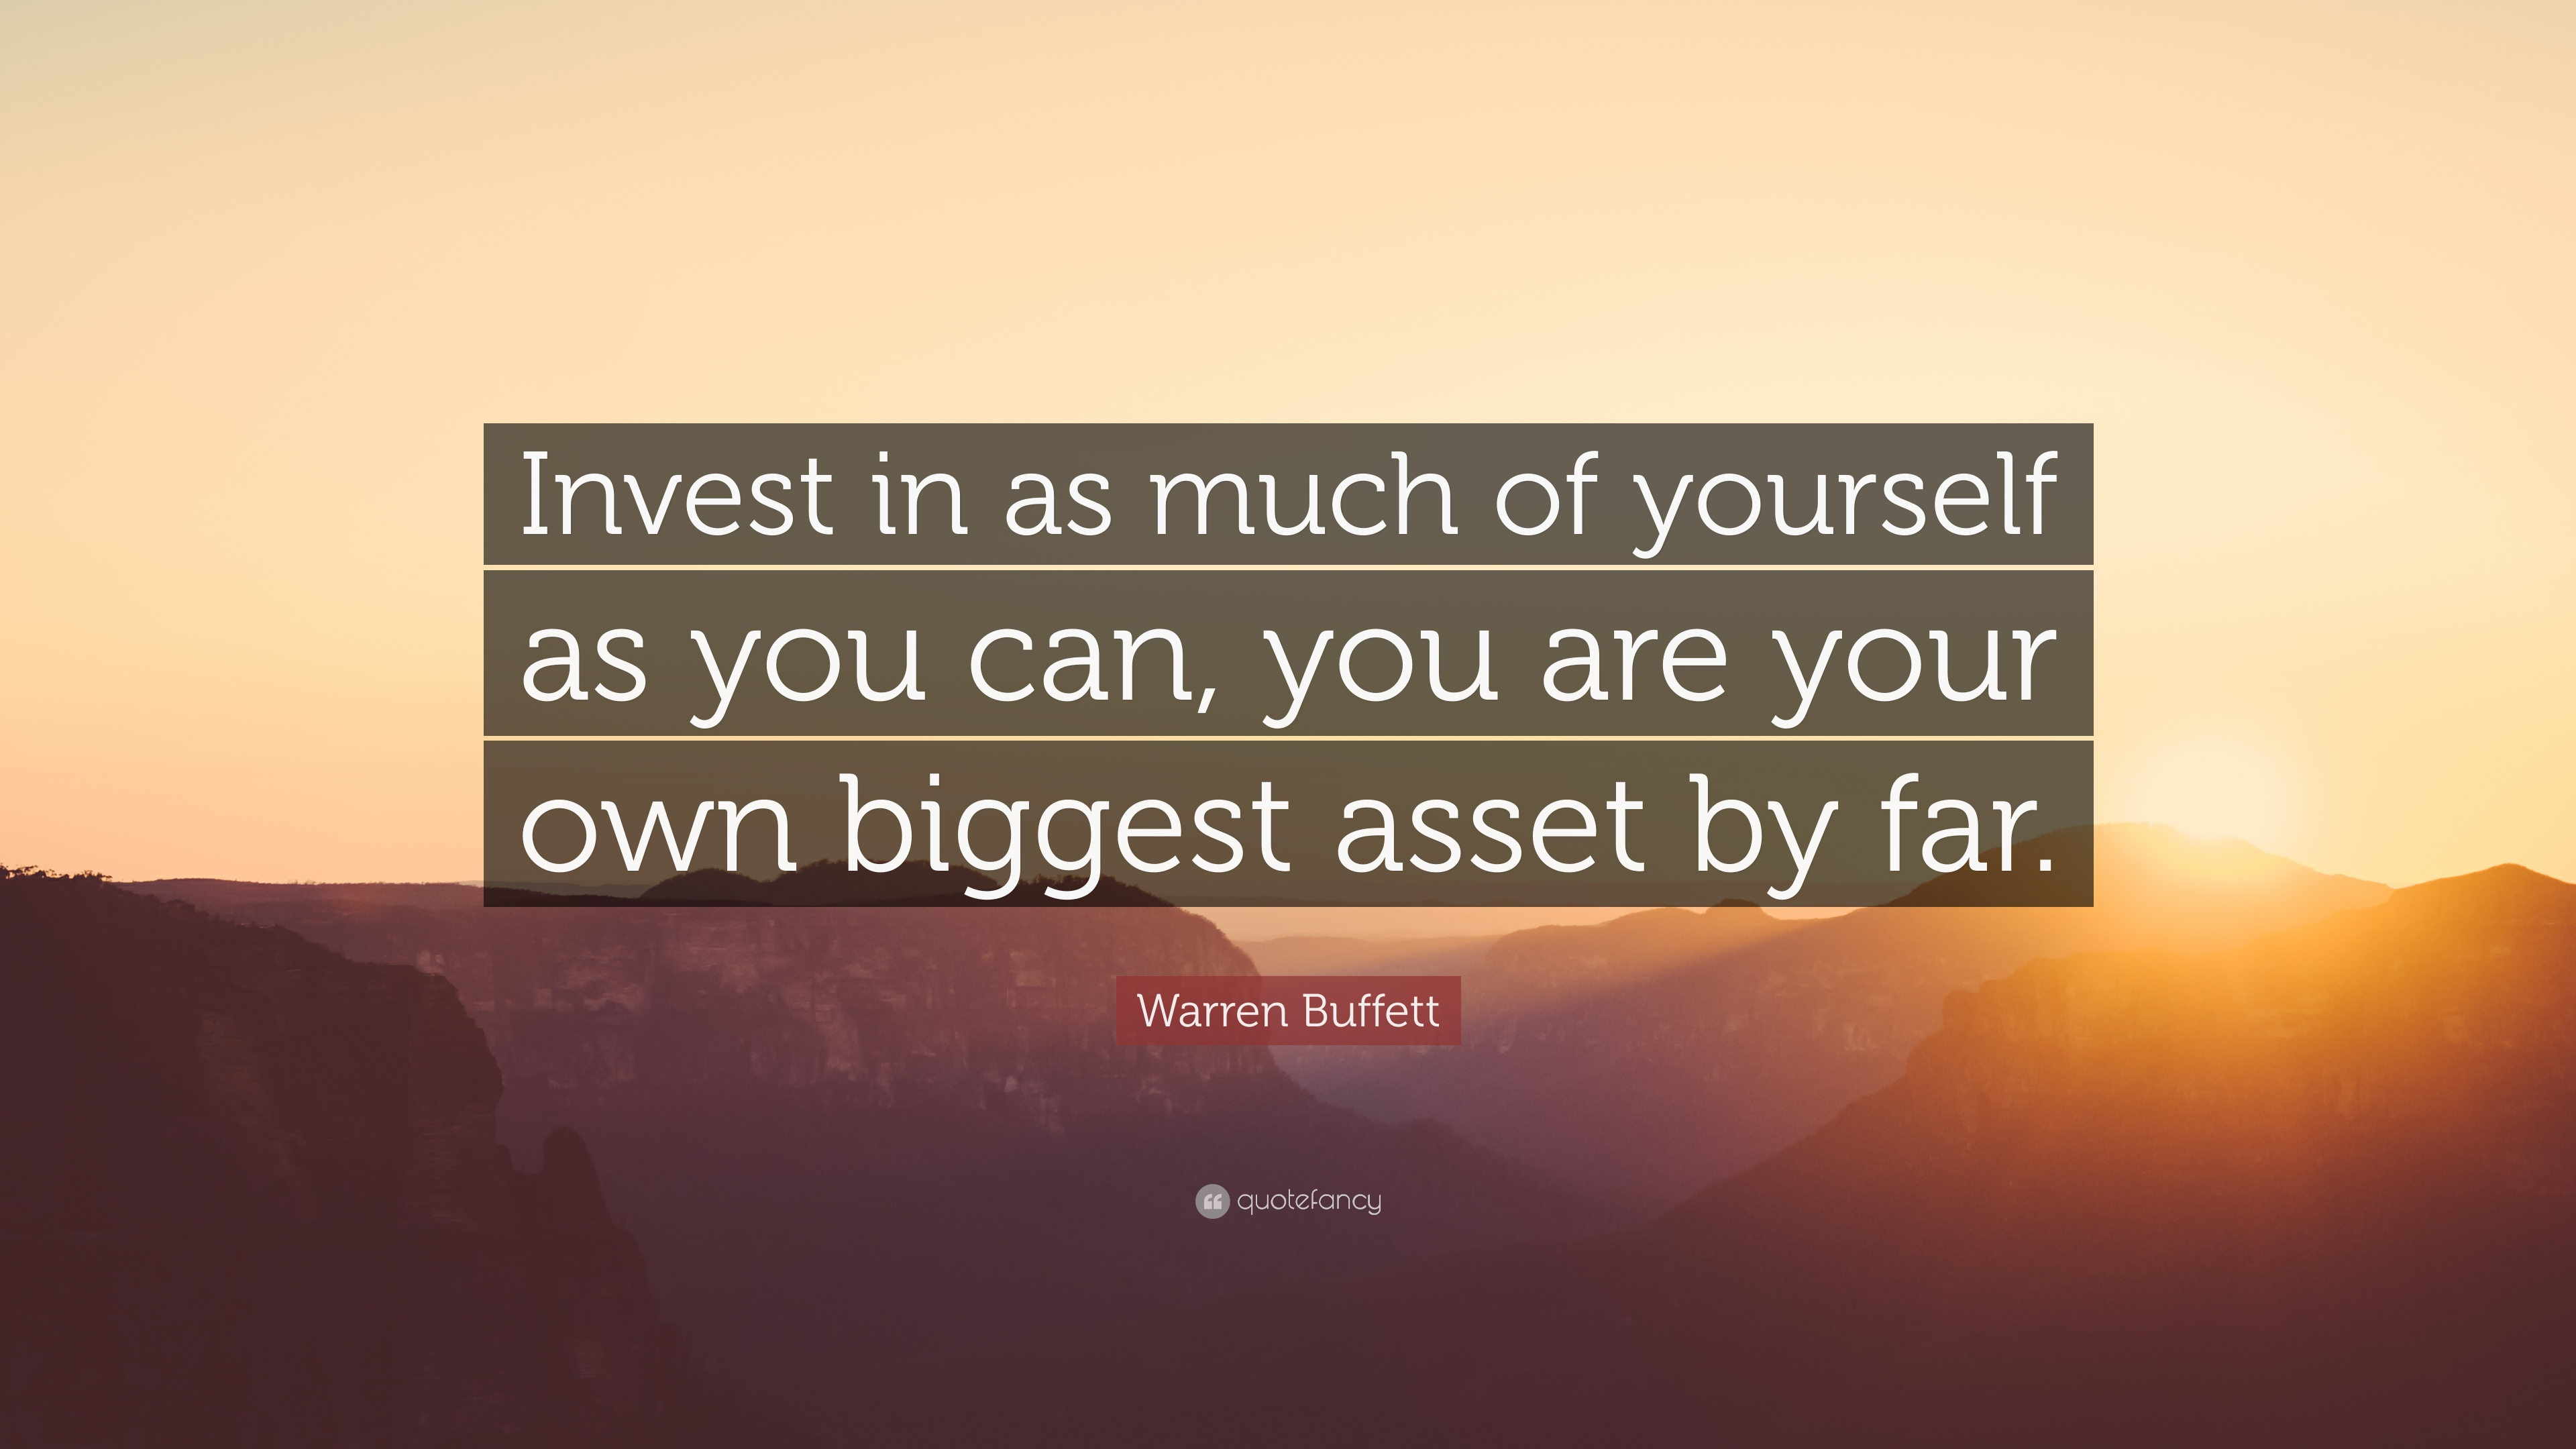 warren buffett quote invest in as much of yourself as you can warren buffett quote invest in as much of yourself as you can you